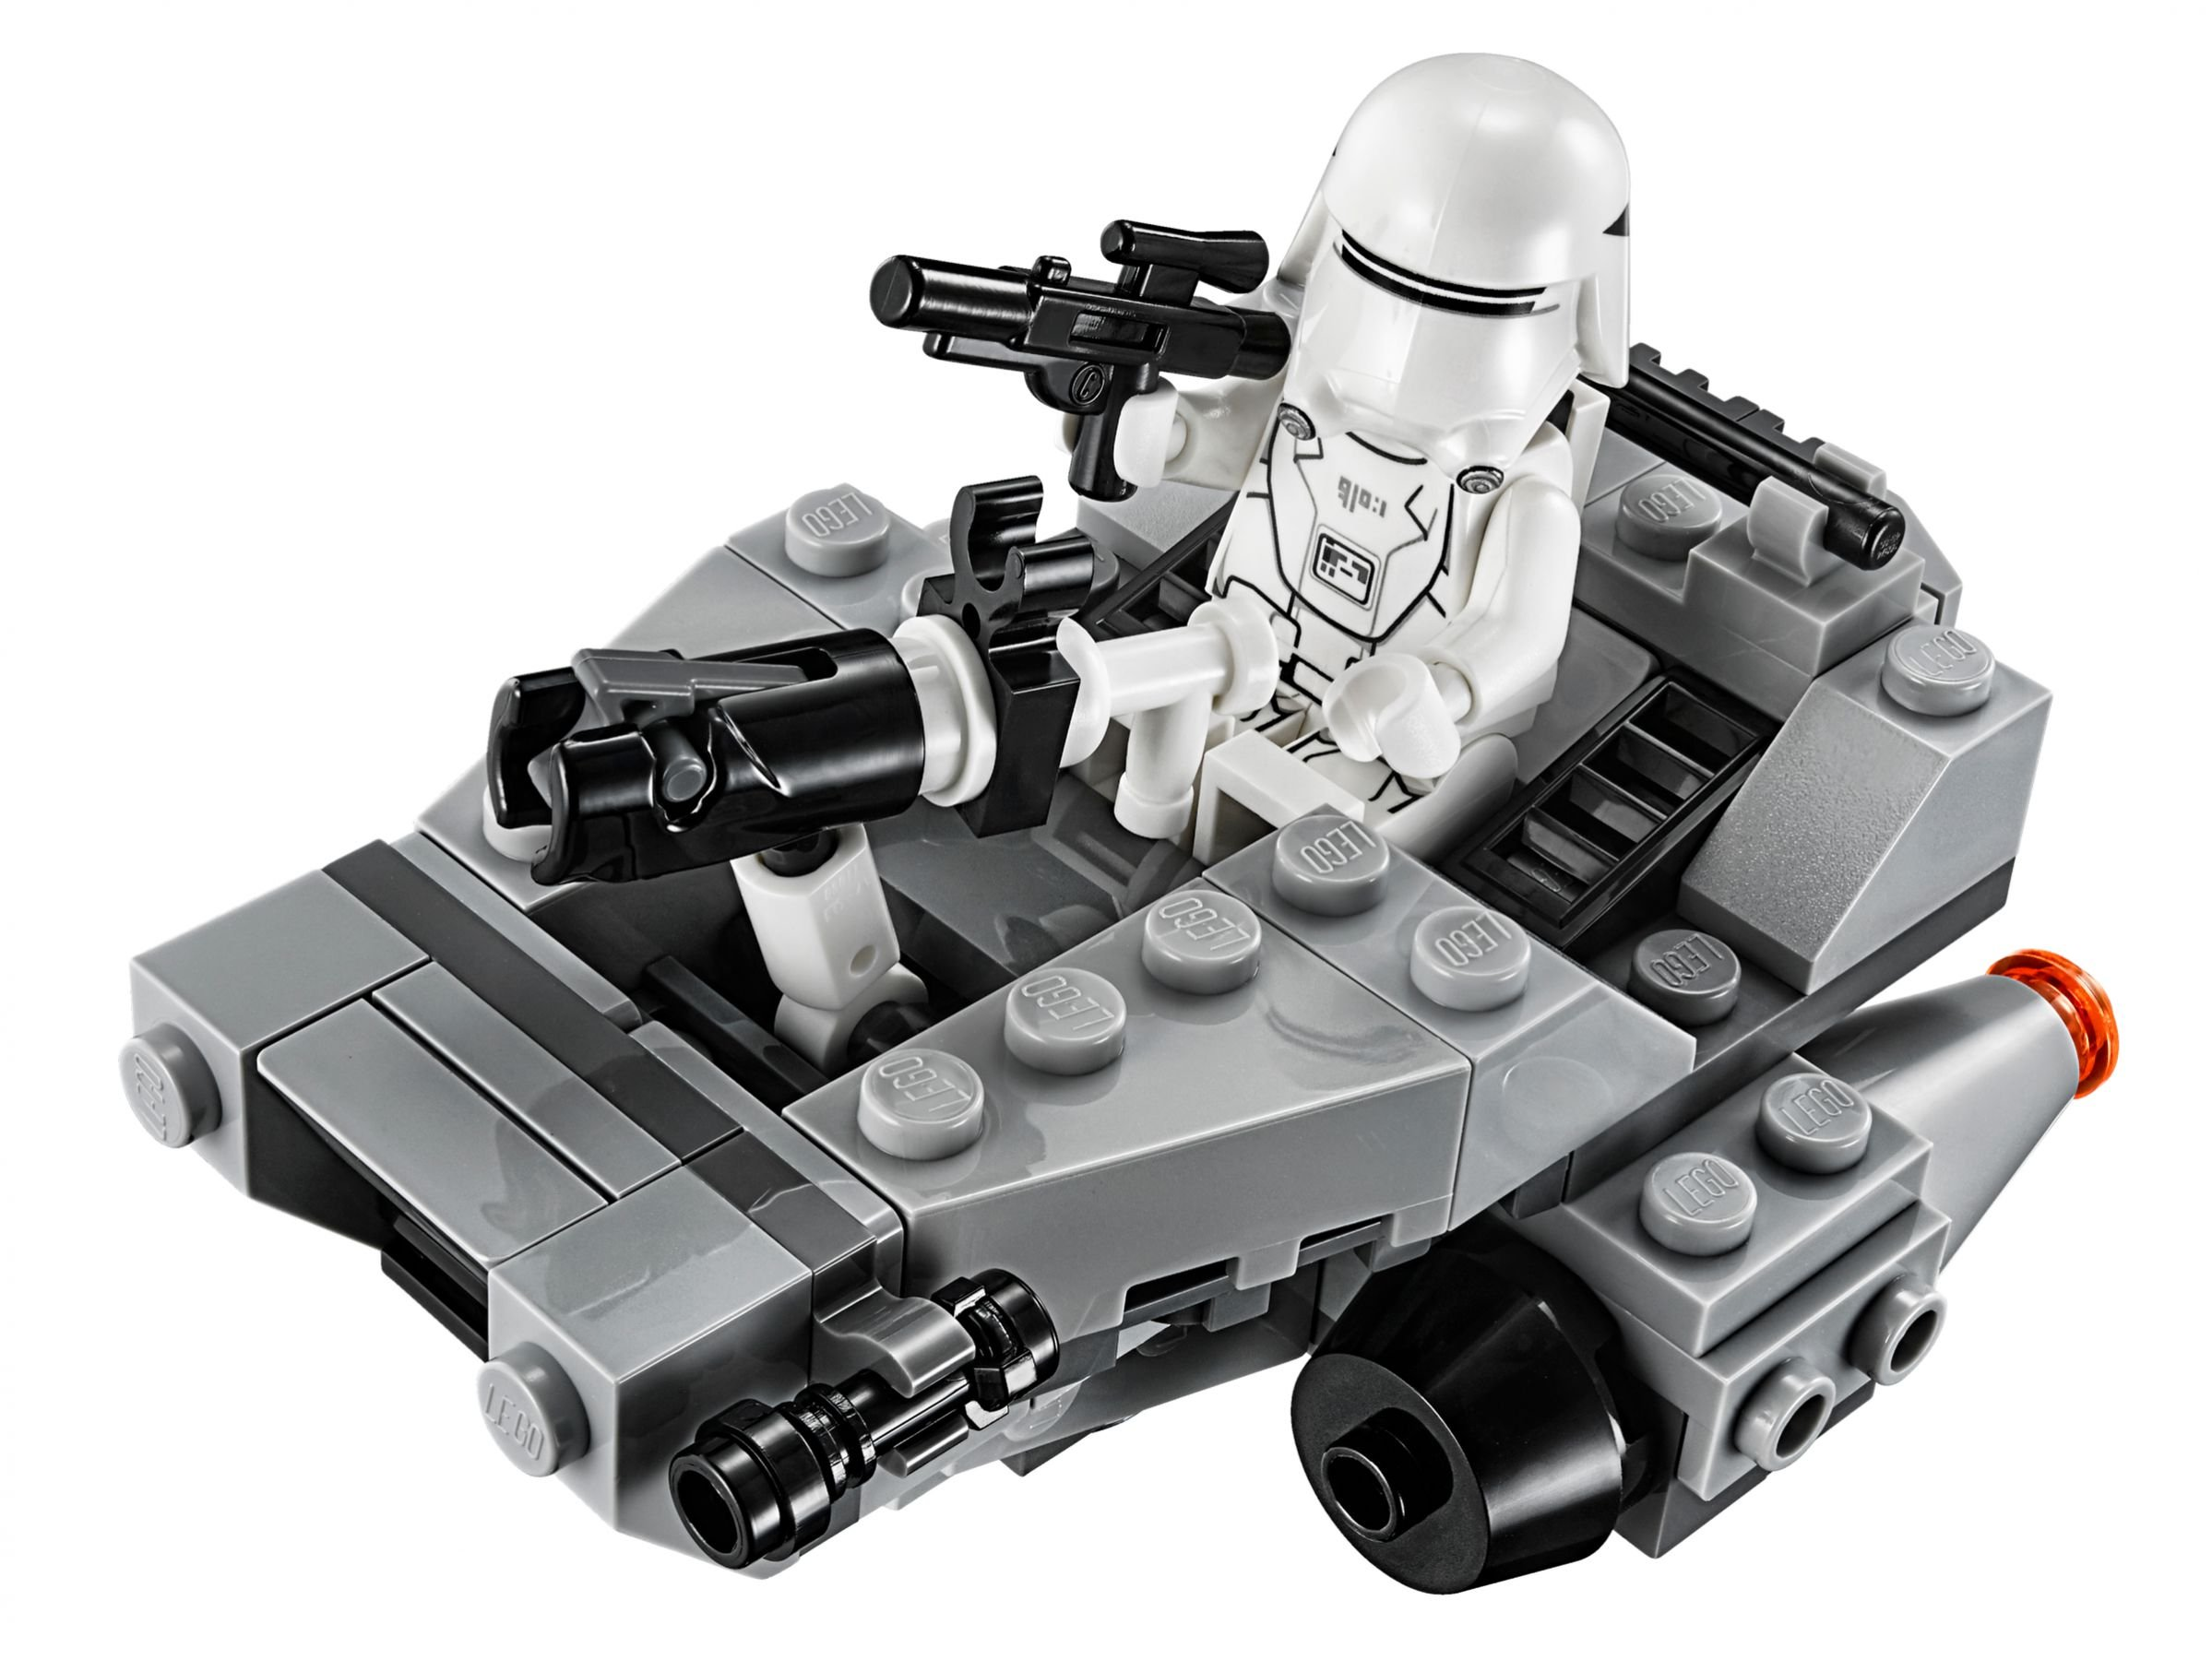 lego 75126 first order snowspeeder star wars 2016 first order snowspeeder brickmerge. Black Bedroom Furniture Sets. Home Design Ideas